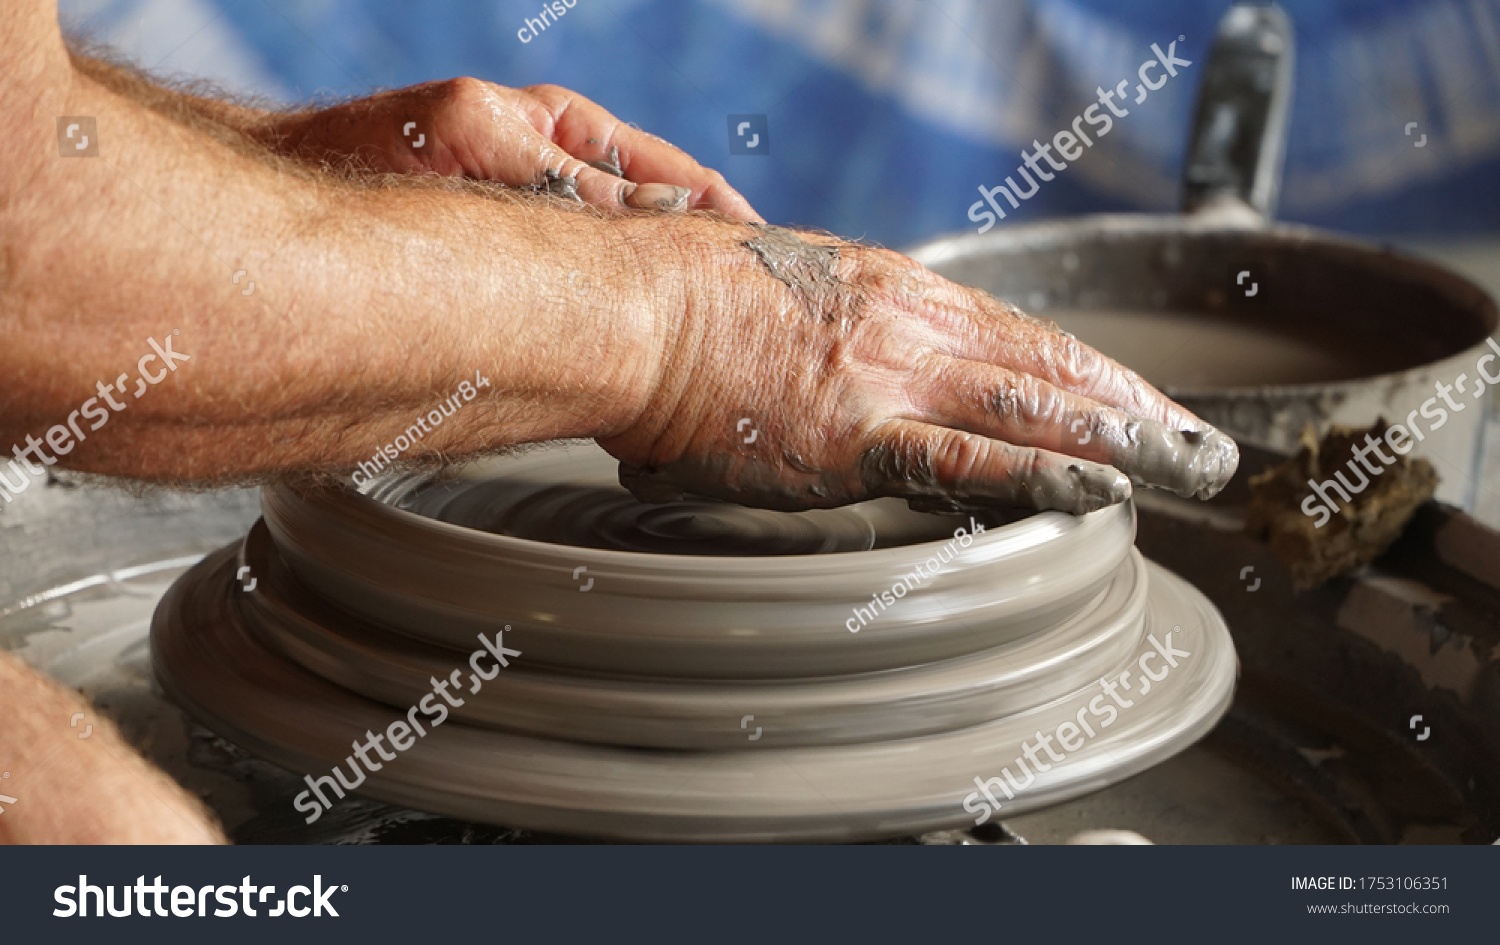 stock-photo-a-potter-working-on-a-new-pi